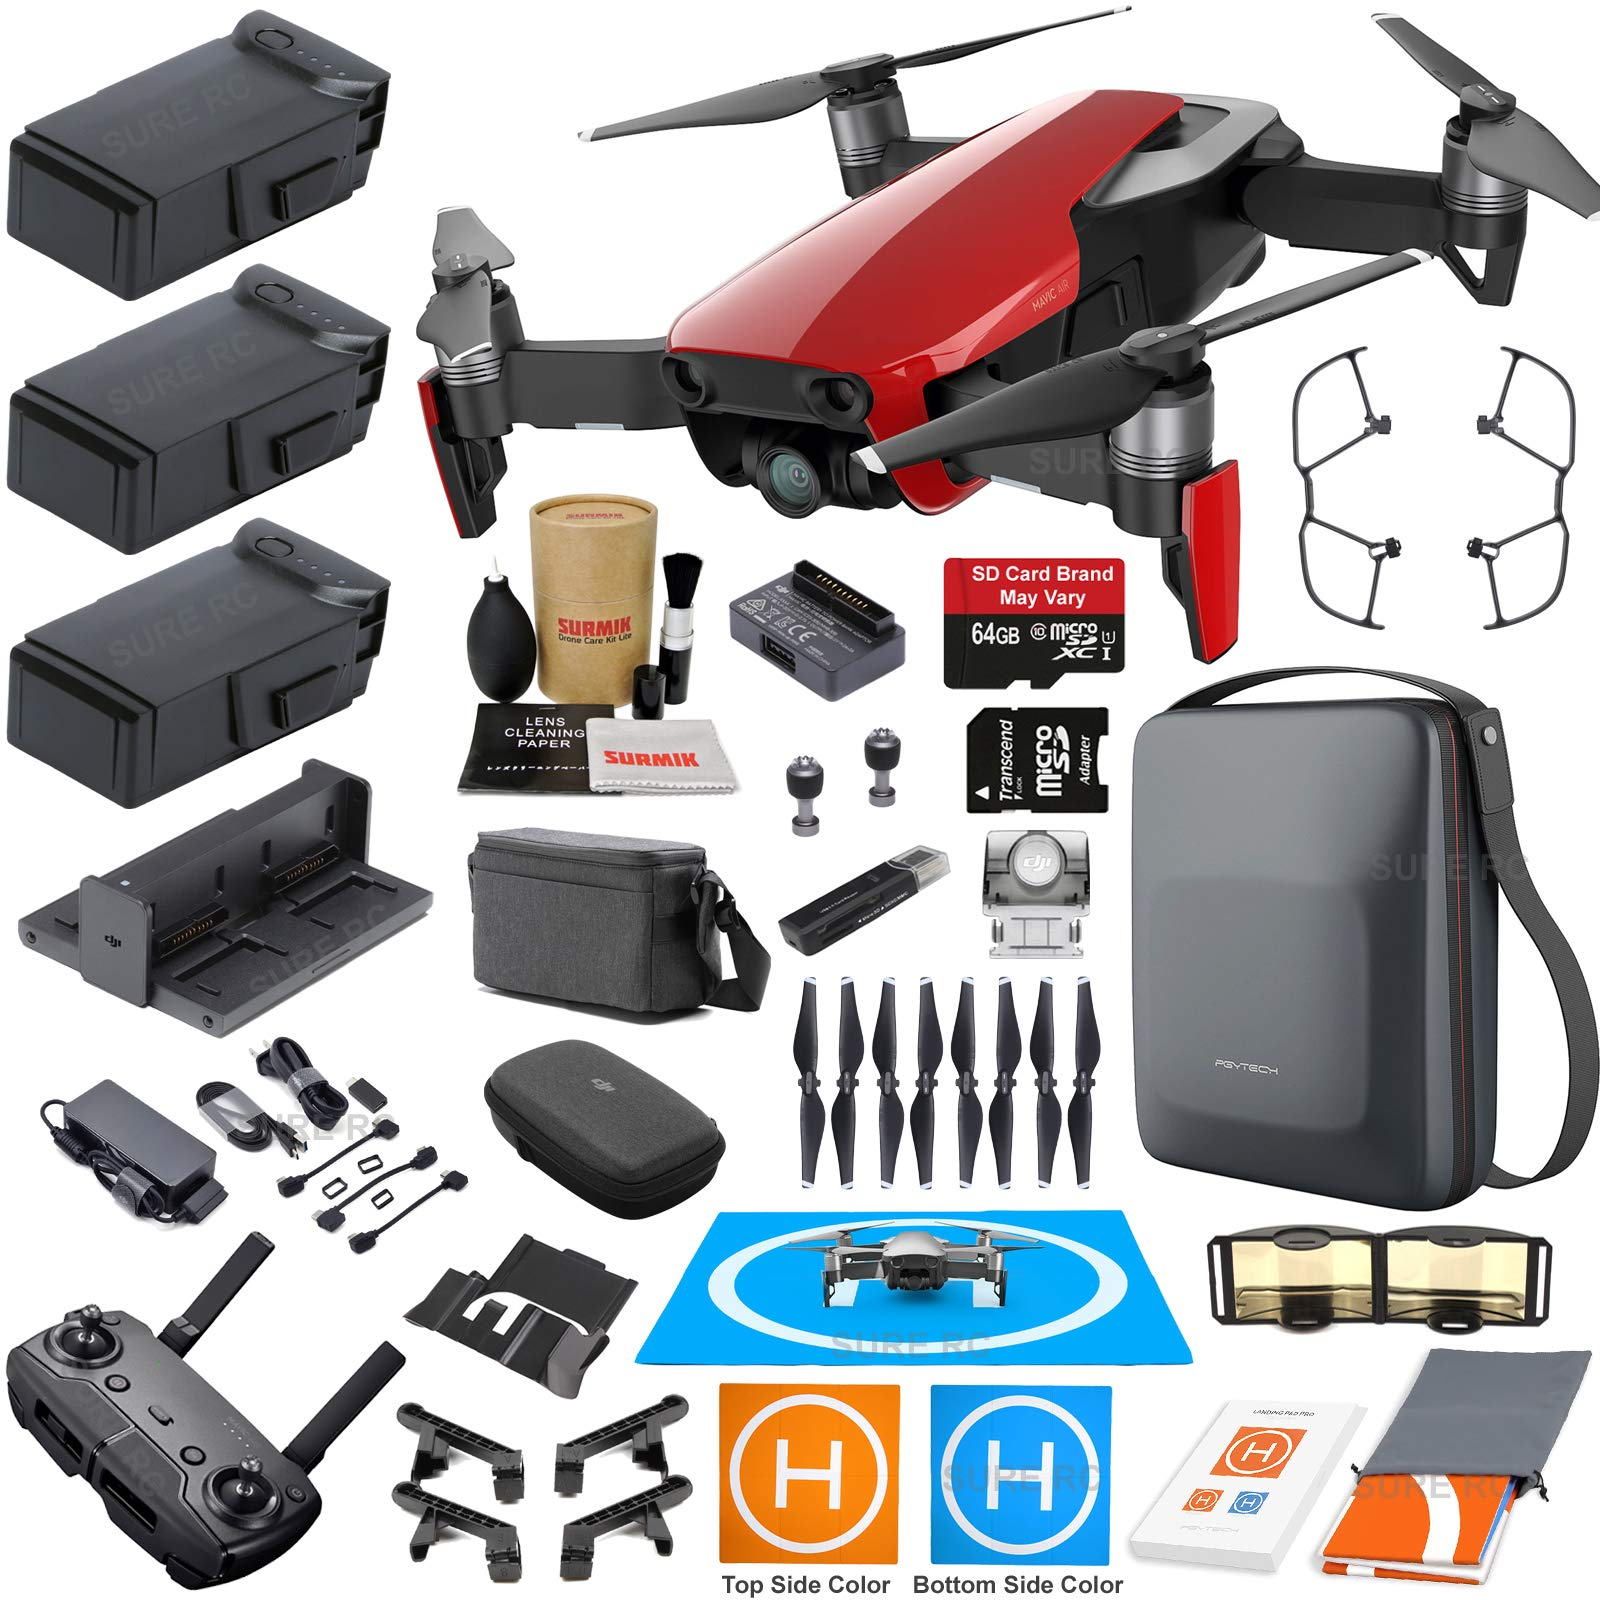 DJI Mavic Air Fly More Combo (Flame Red) Touring Bundle with 3 Batteries, 4K Camera Gimbal, PGYTECH Carrying Case and Must Have Accessories